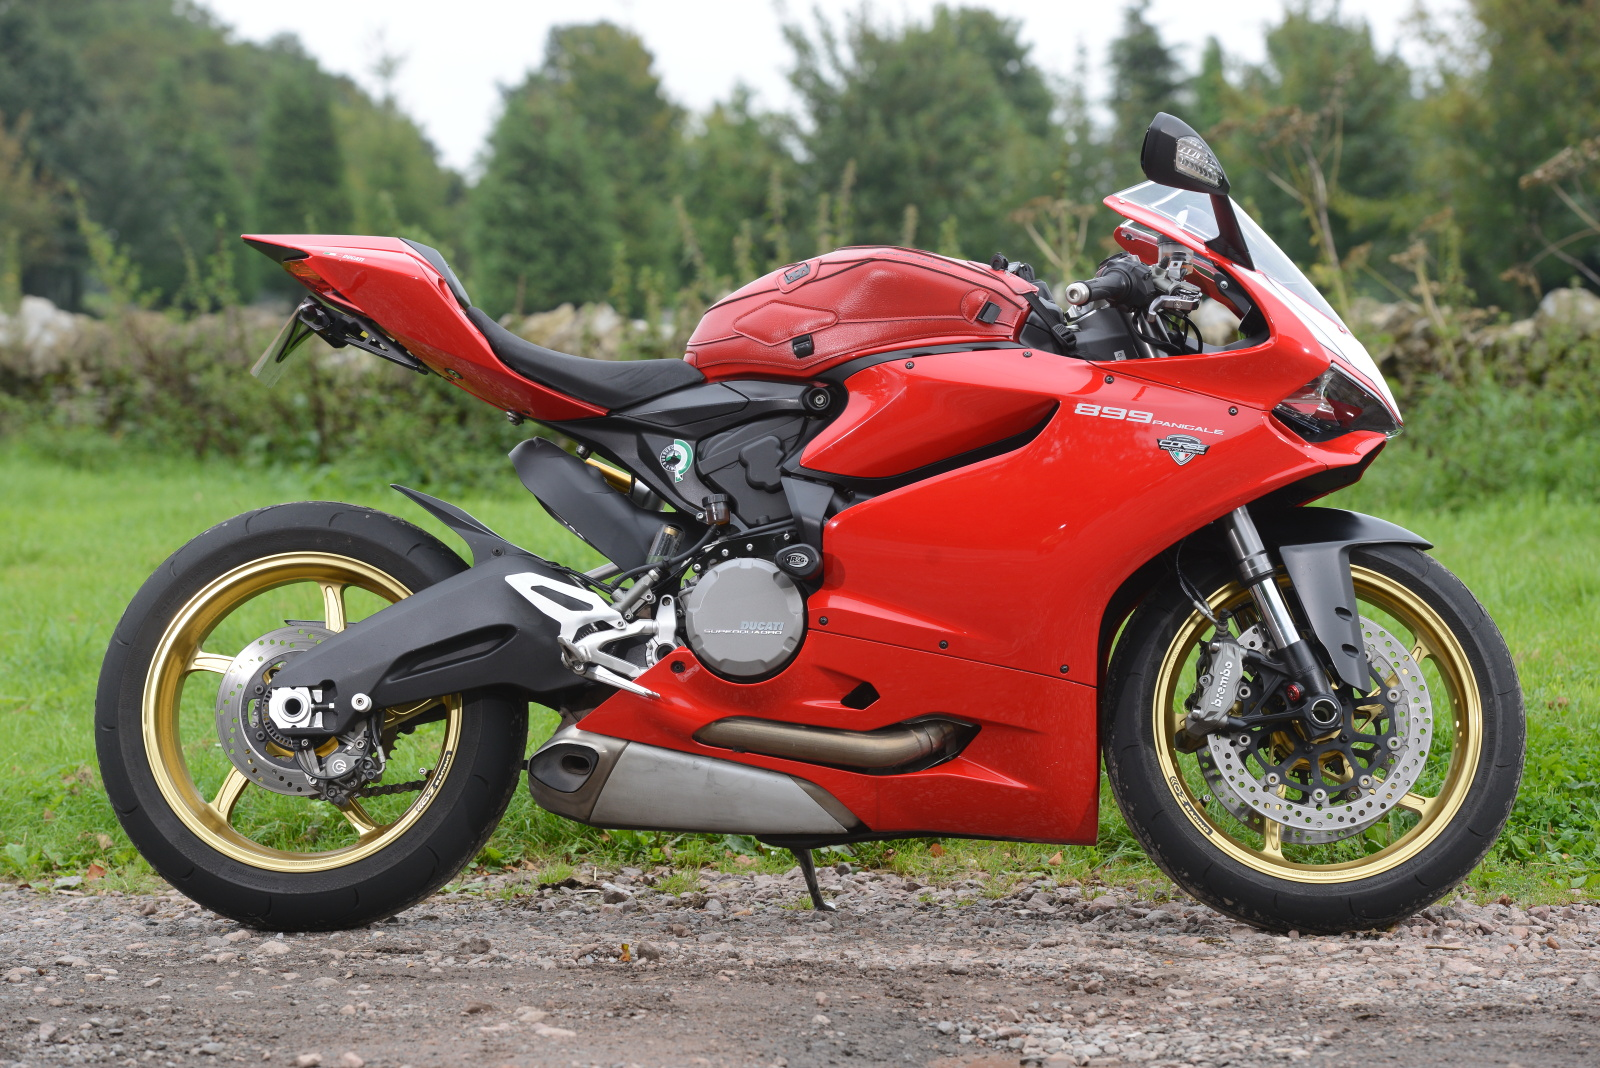 2014 Panigale 899 used test4 Panigale 899 used test